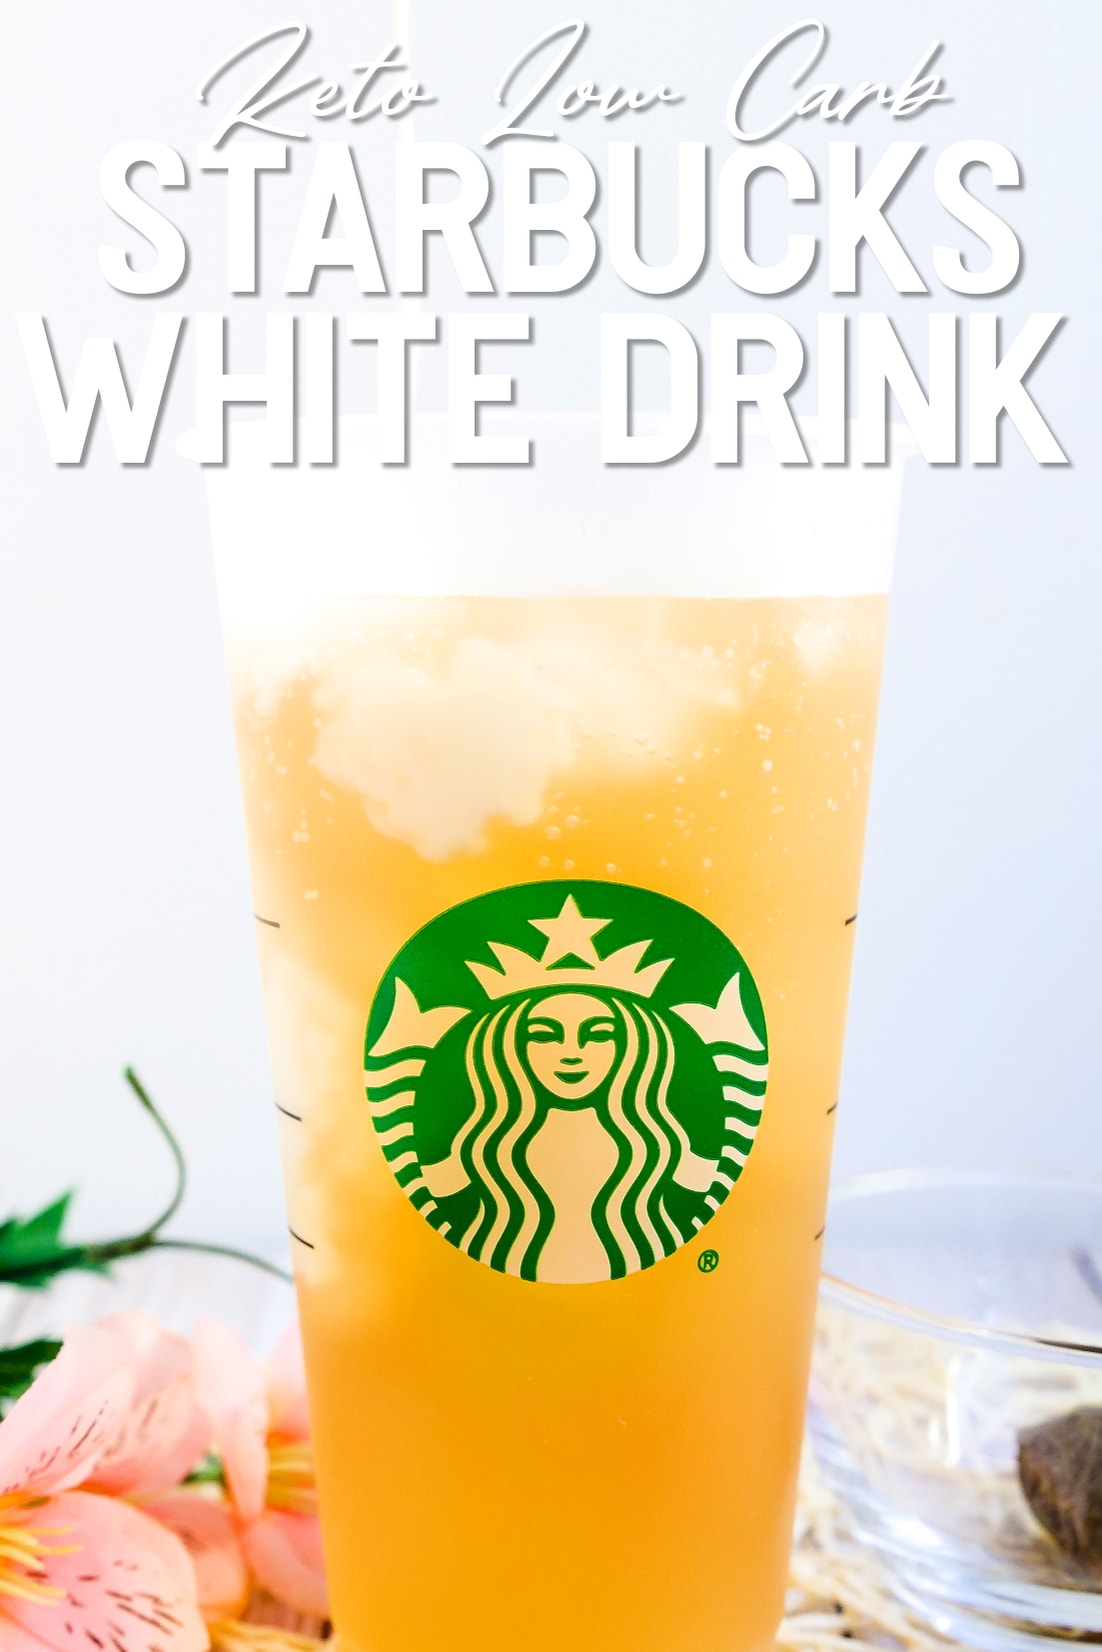 Starbucks Keto White Drink with cream being poured in